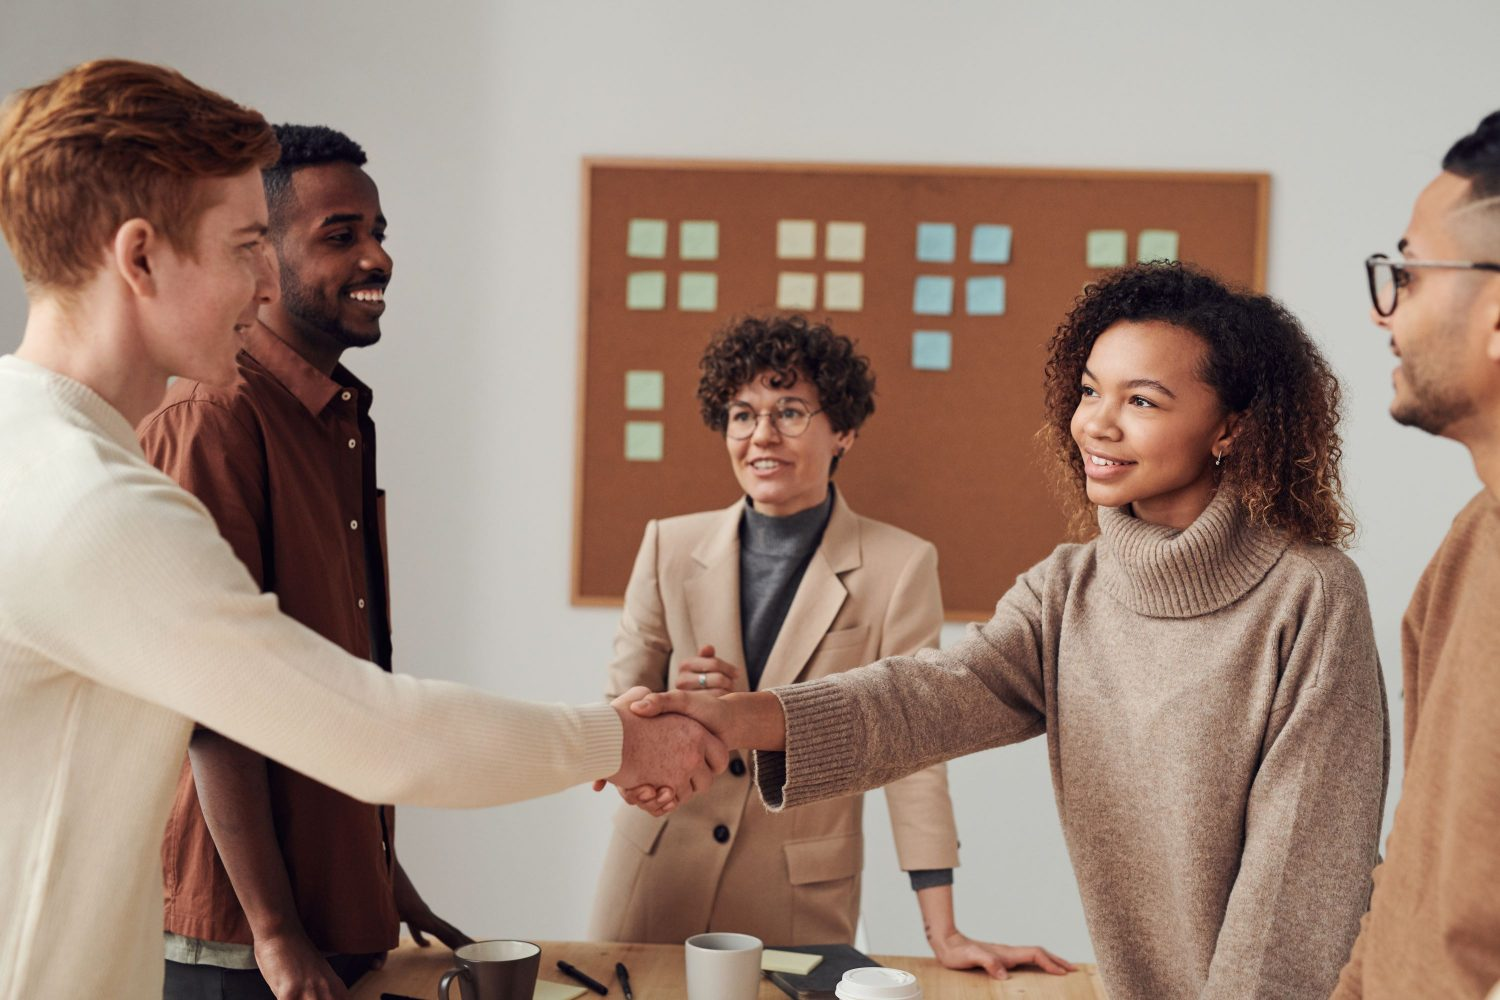 New team members shaking hands. Photo by Fauxels by Pexels